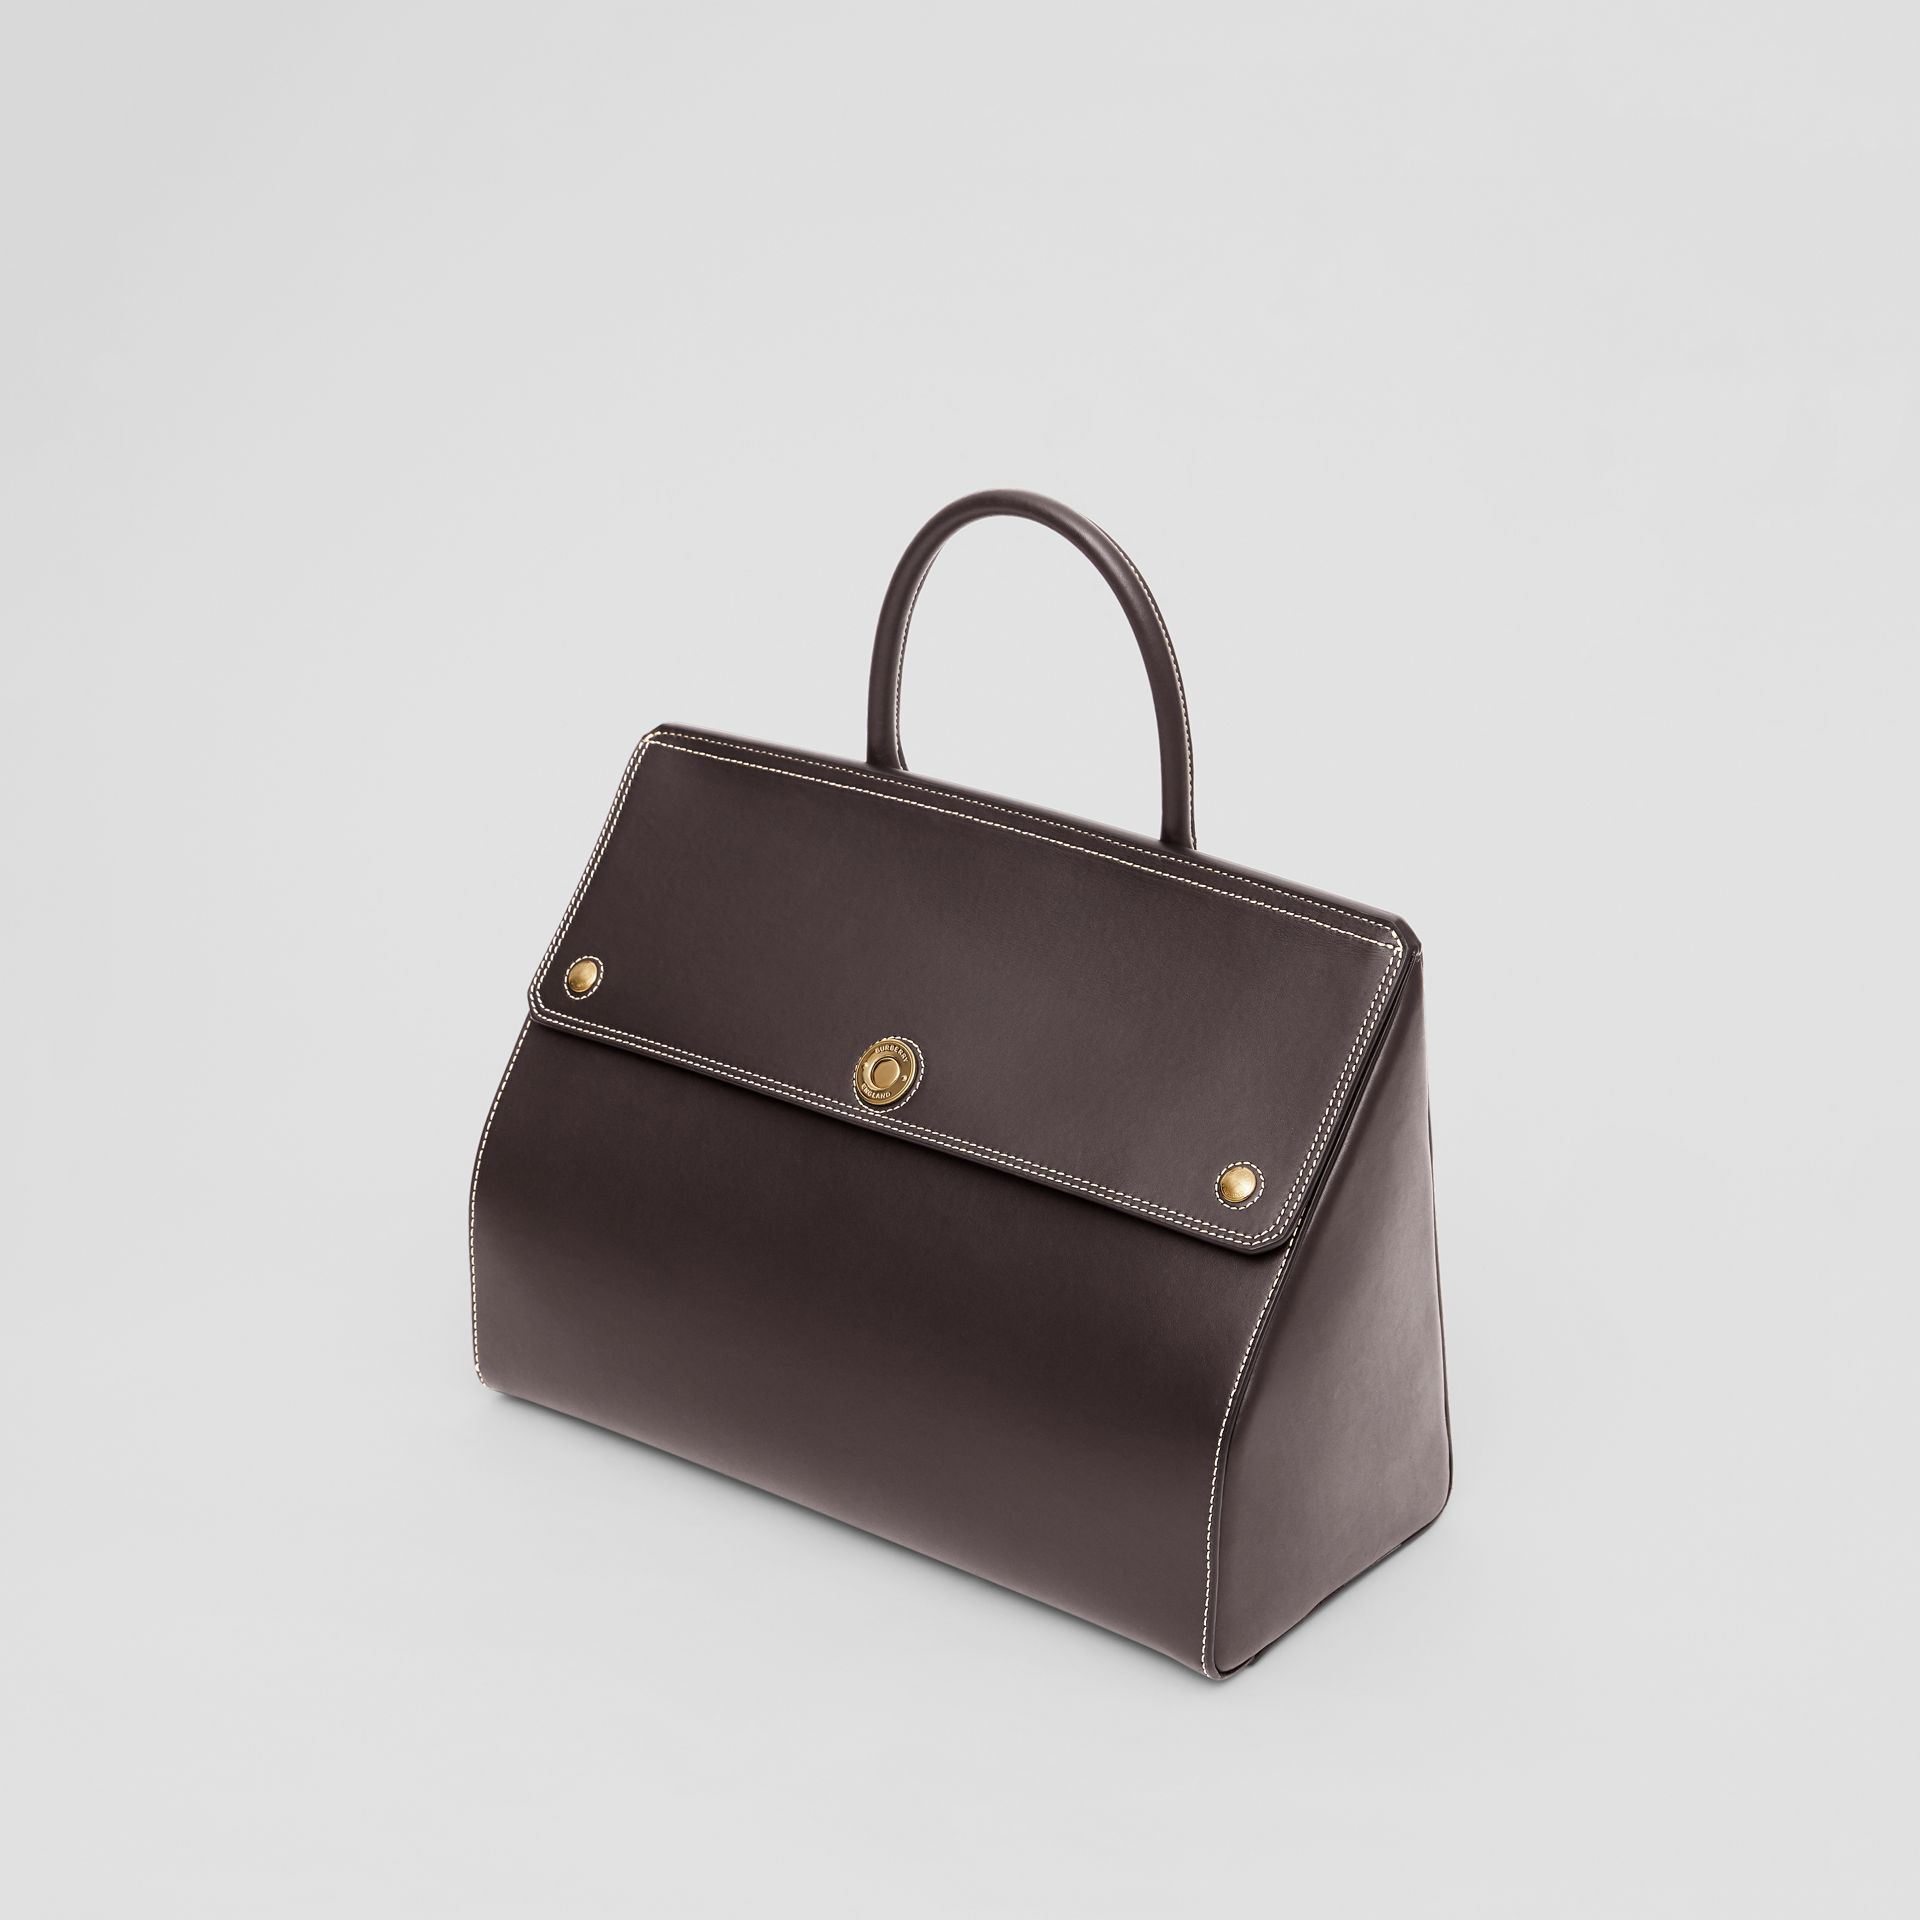 Medium Leather Elizabeth Bag in Coffee - Women | Burberry United States - gallery image 3